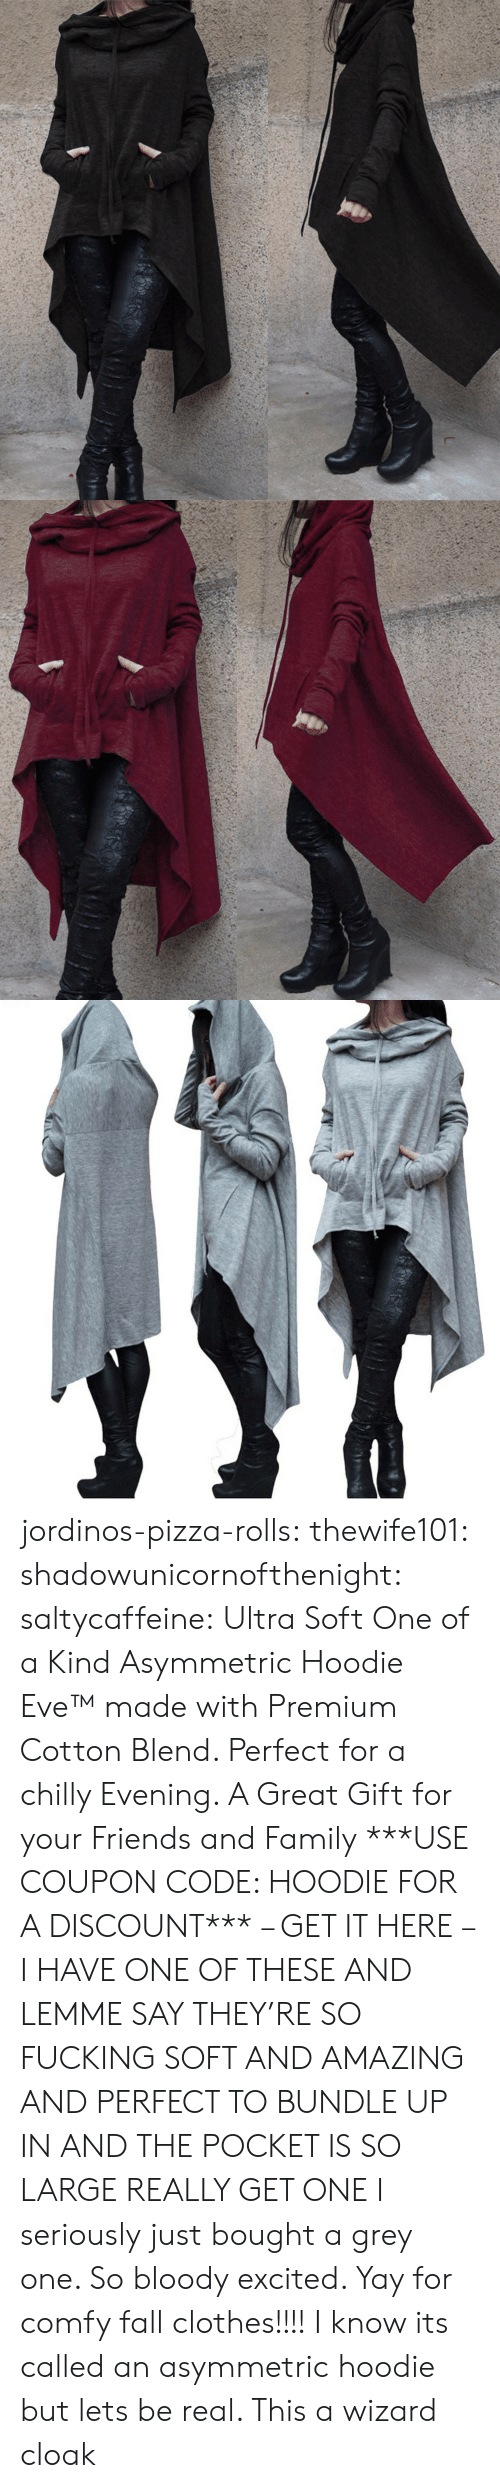 Clothes, Fall, and Family: jordinos-pizza-rolls:  thewife101:  shadowunicornofthenight:  saltycaffeine:  Ultra Soft One of a Kind Asymmetric Hoodie Eve™ made with Premium Cotton Blend. Perfect for a chilly Evening. A Great Gift for your Friends and Family ***USE COUPON CODE: HOODIE FOR A DISCOUNT*** – GET IT HERE –   I HAVE ONE OF THESE AND LEMME SAY THEY'RE SO FUCKING SOFT AND AMAZING AND PERFECT TO BUNDLE UP IN AND THE POCKET IS SO LARGE REALLY GET ONE   I seriously just bought a grey one. So bloody excited. Yay for comfy fall clothes!!!!    I know its called an asymmetric hoodie but lets be real. This a wizard cloak